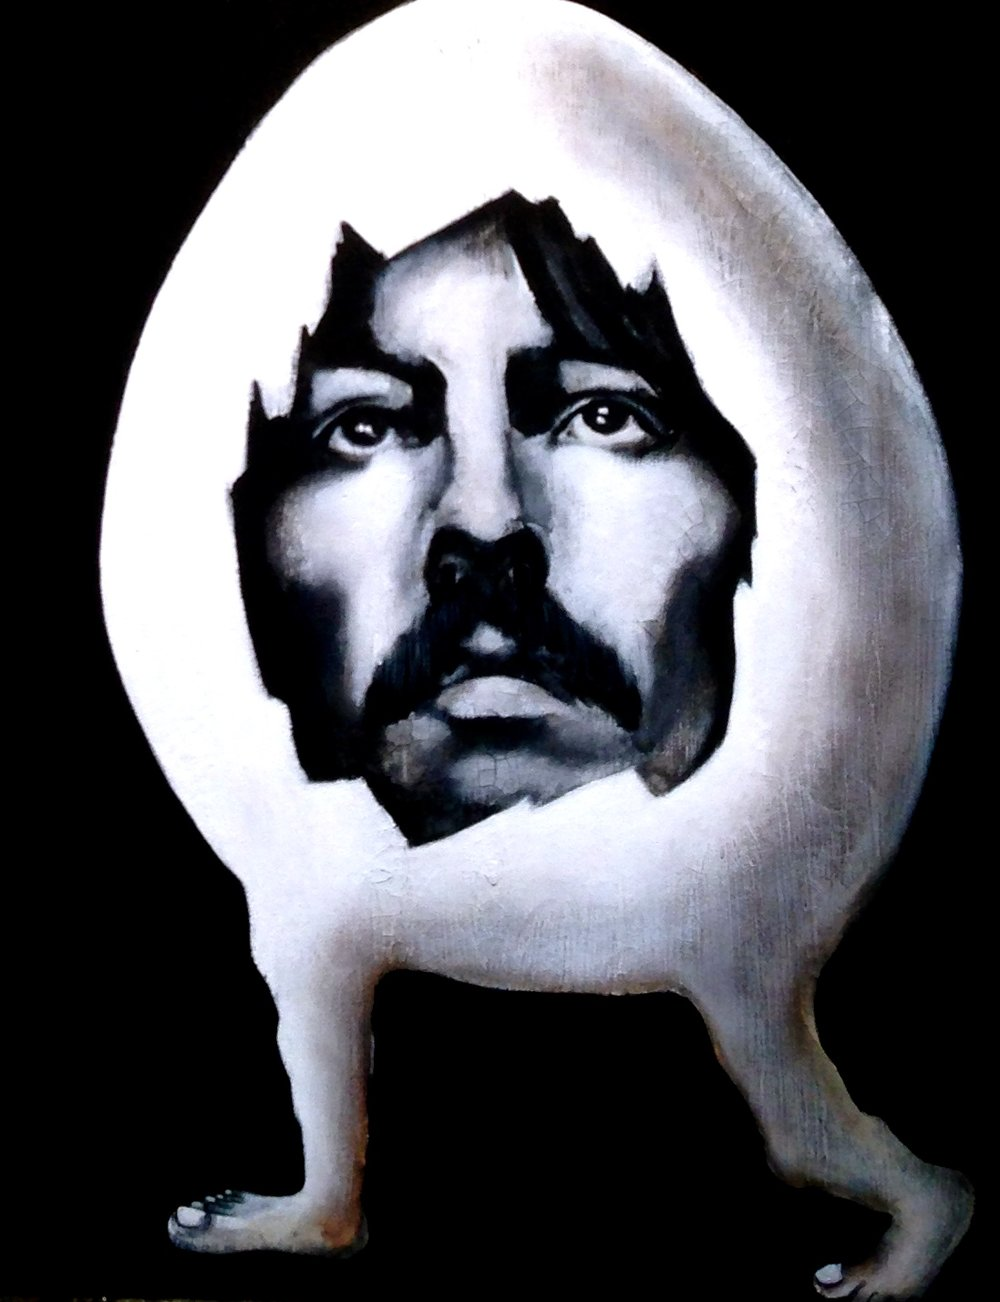 George Harrison Beatle Egg, 2016  Acrylic, oil texture medium on canvas